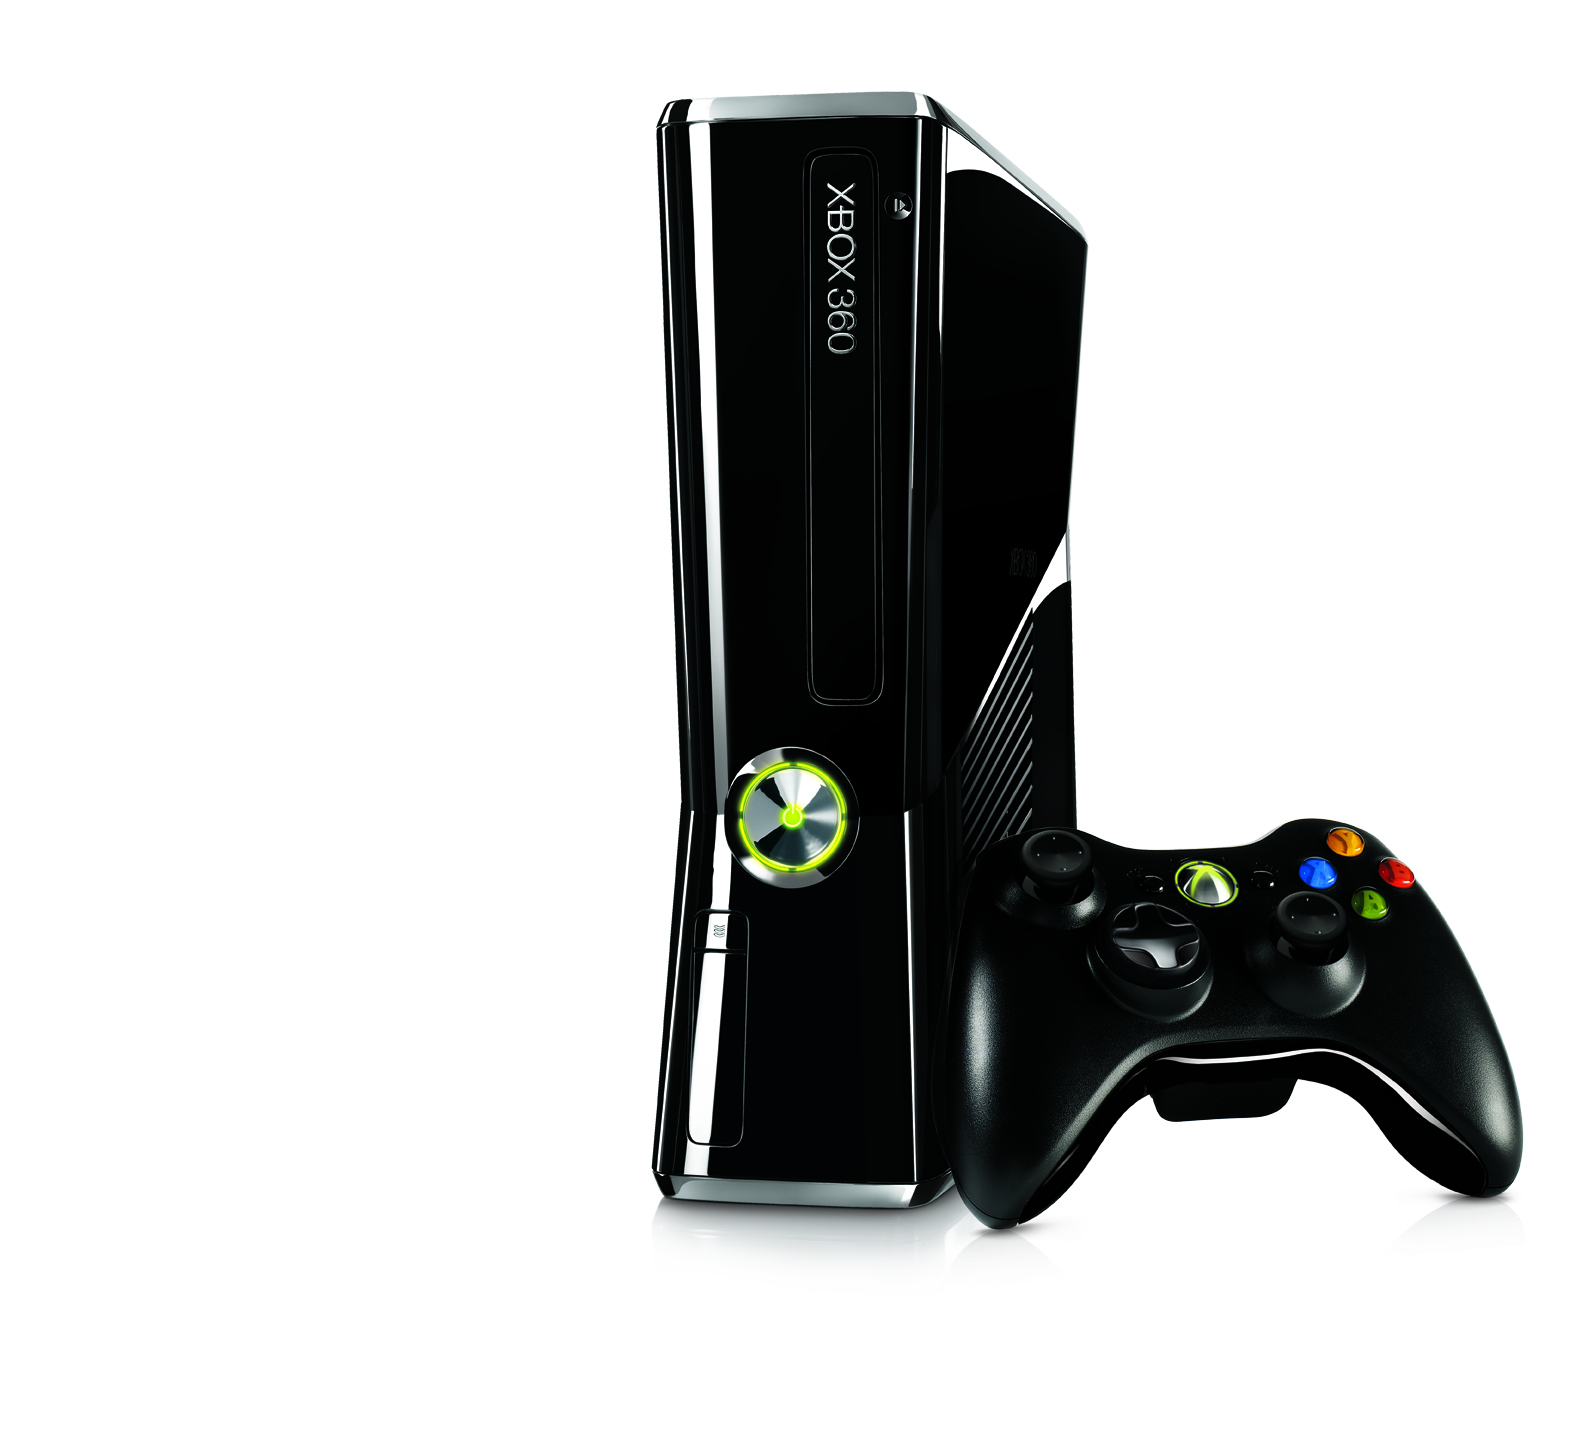 Xbox 360 Slim Vs Xbox 360 Elite Xbox 360 E Back - View...